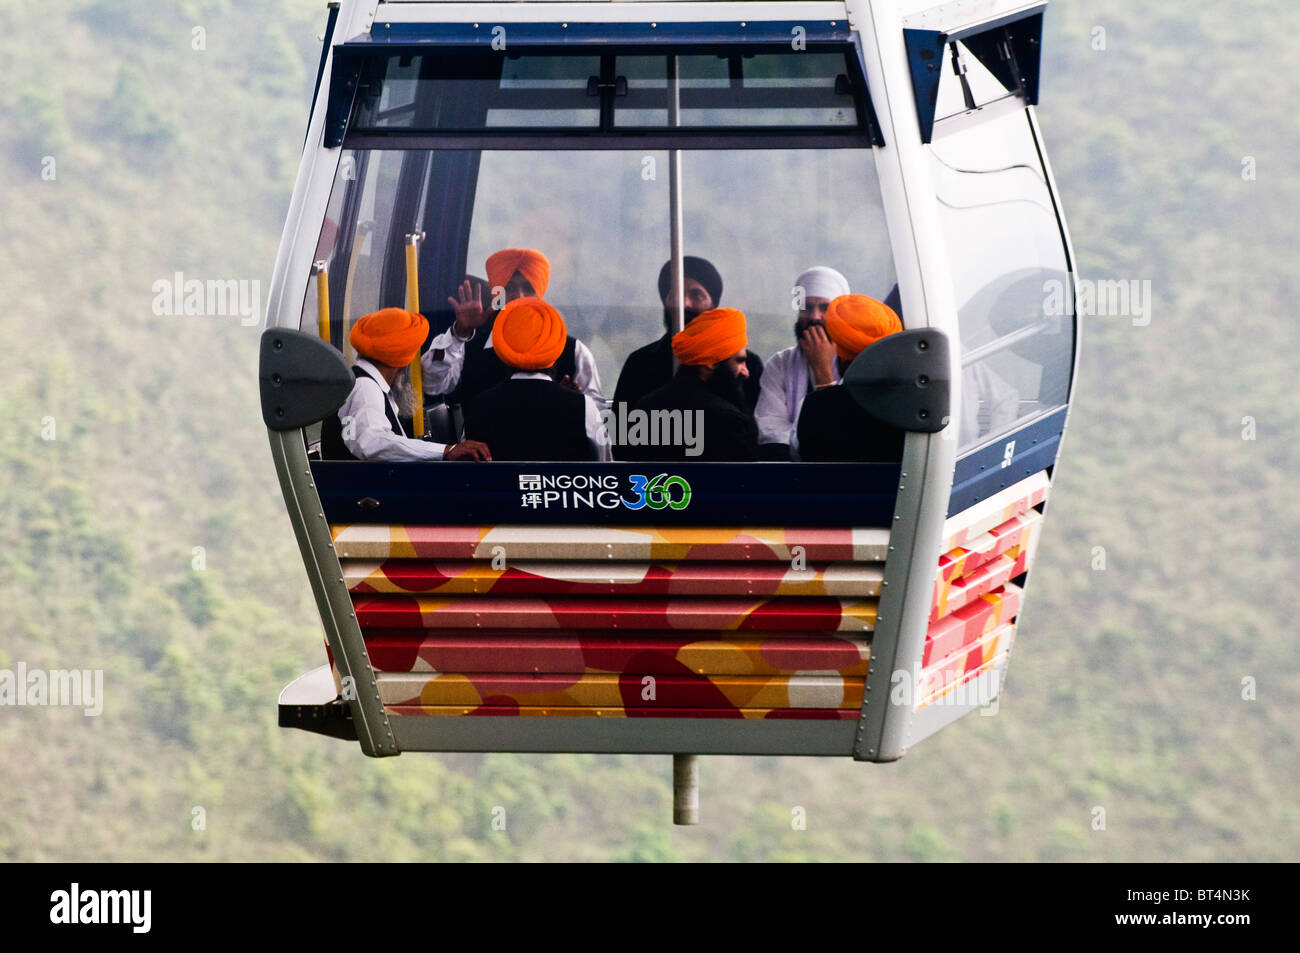 A cable car full of Sikh tourist on its way to the Big Buddha on Lantau island in Hong Kong. - Stock Image